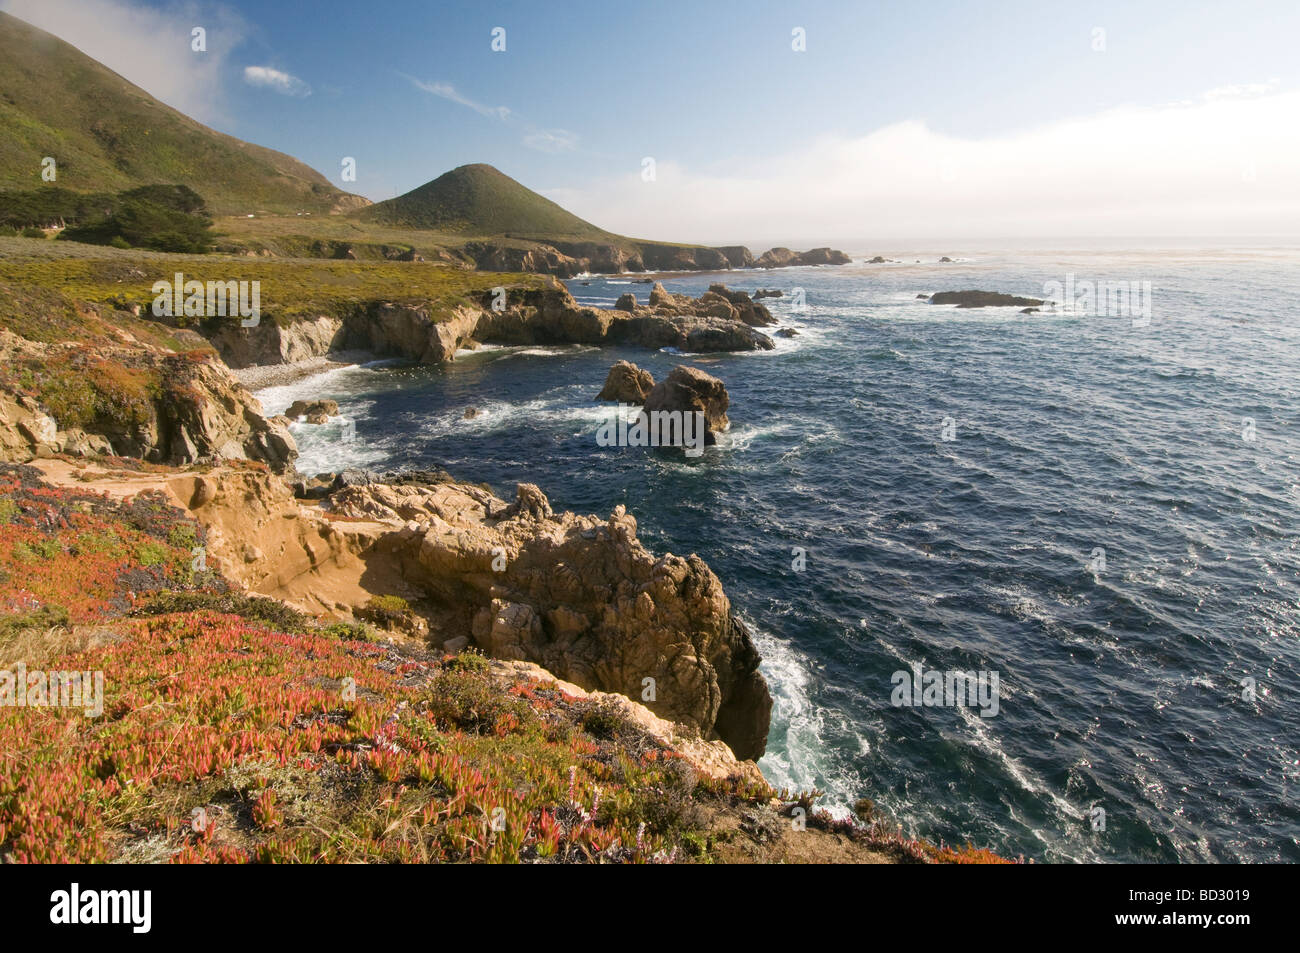 Wildflowers along the rocky cliffs on the coast of Big Sur California - Stock Image